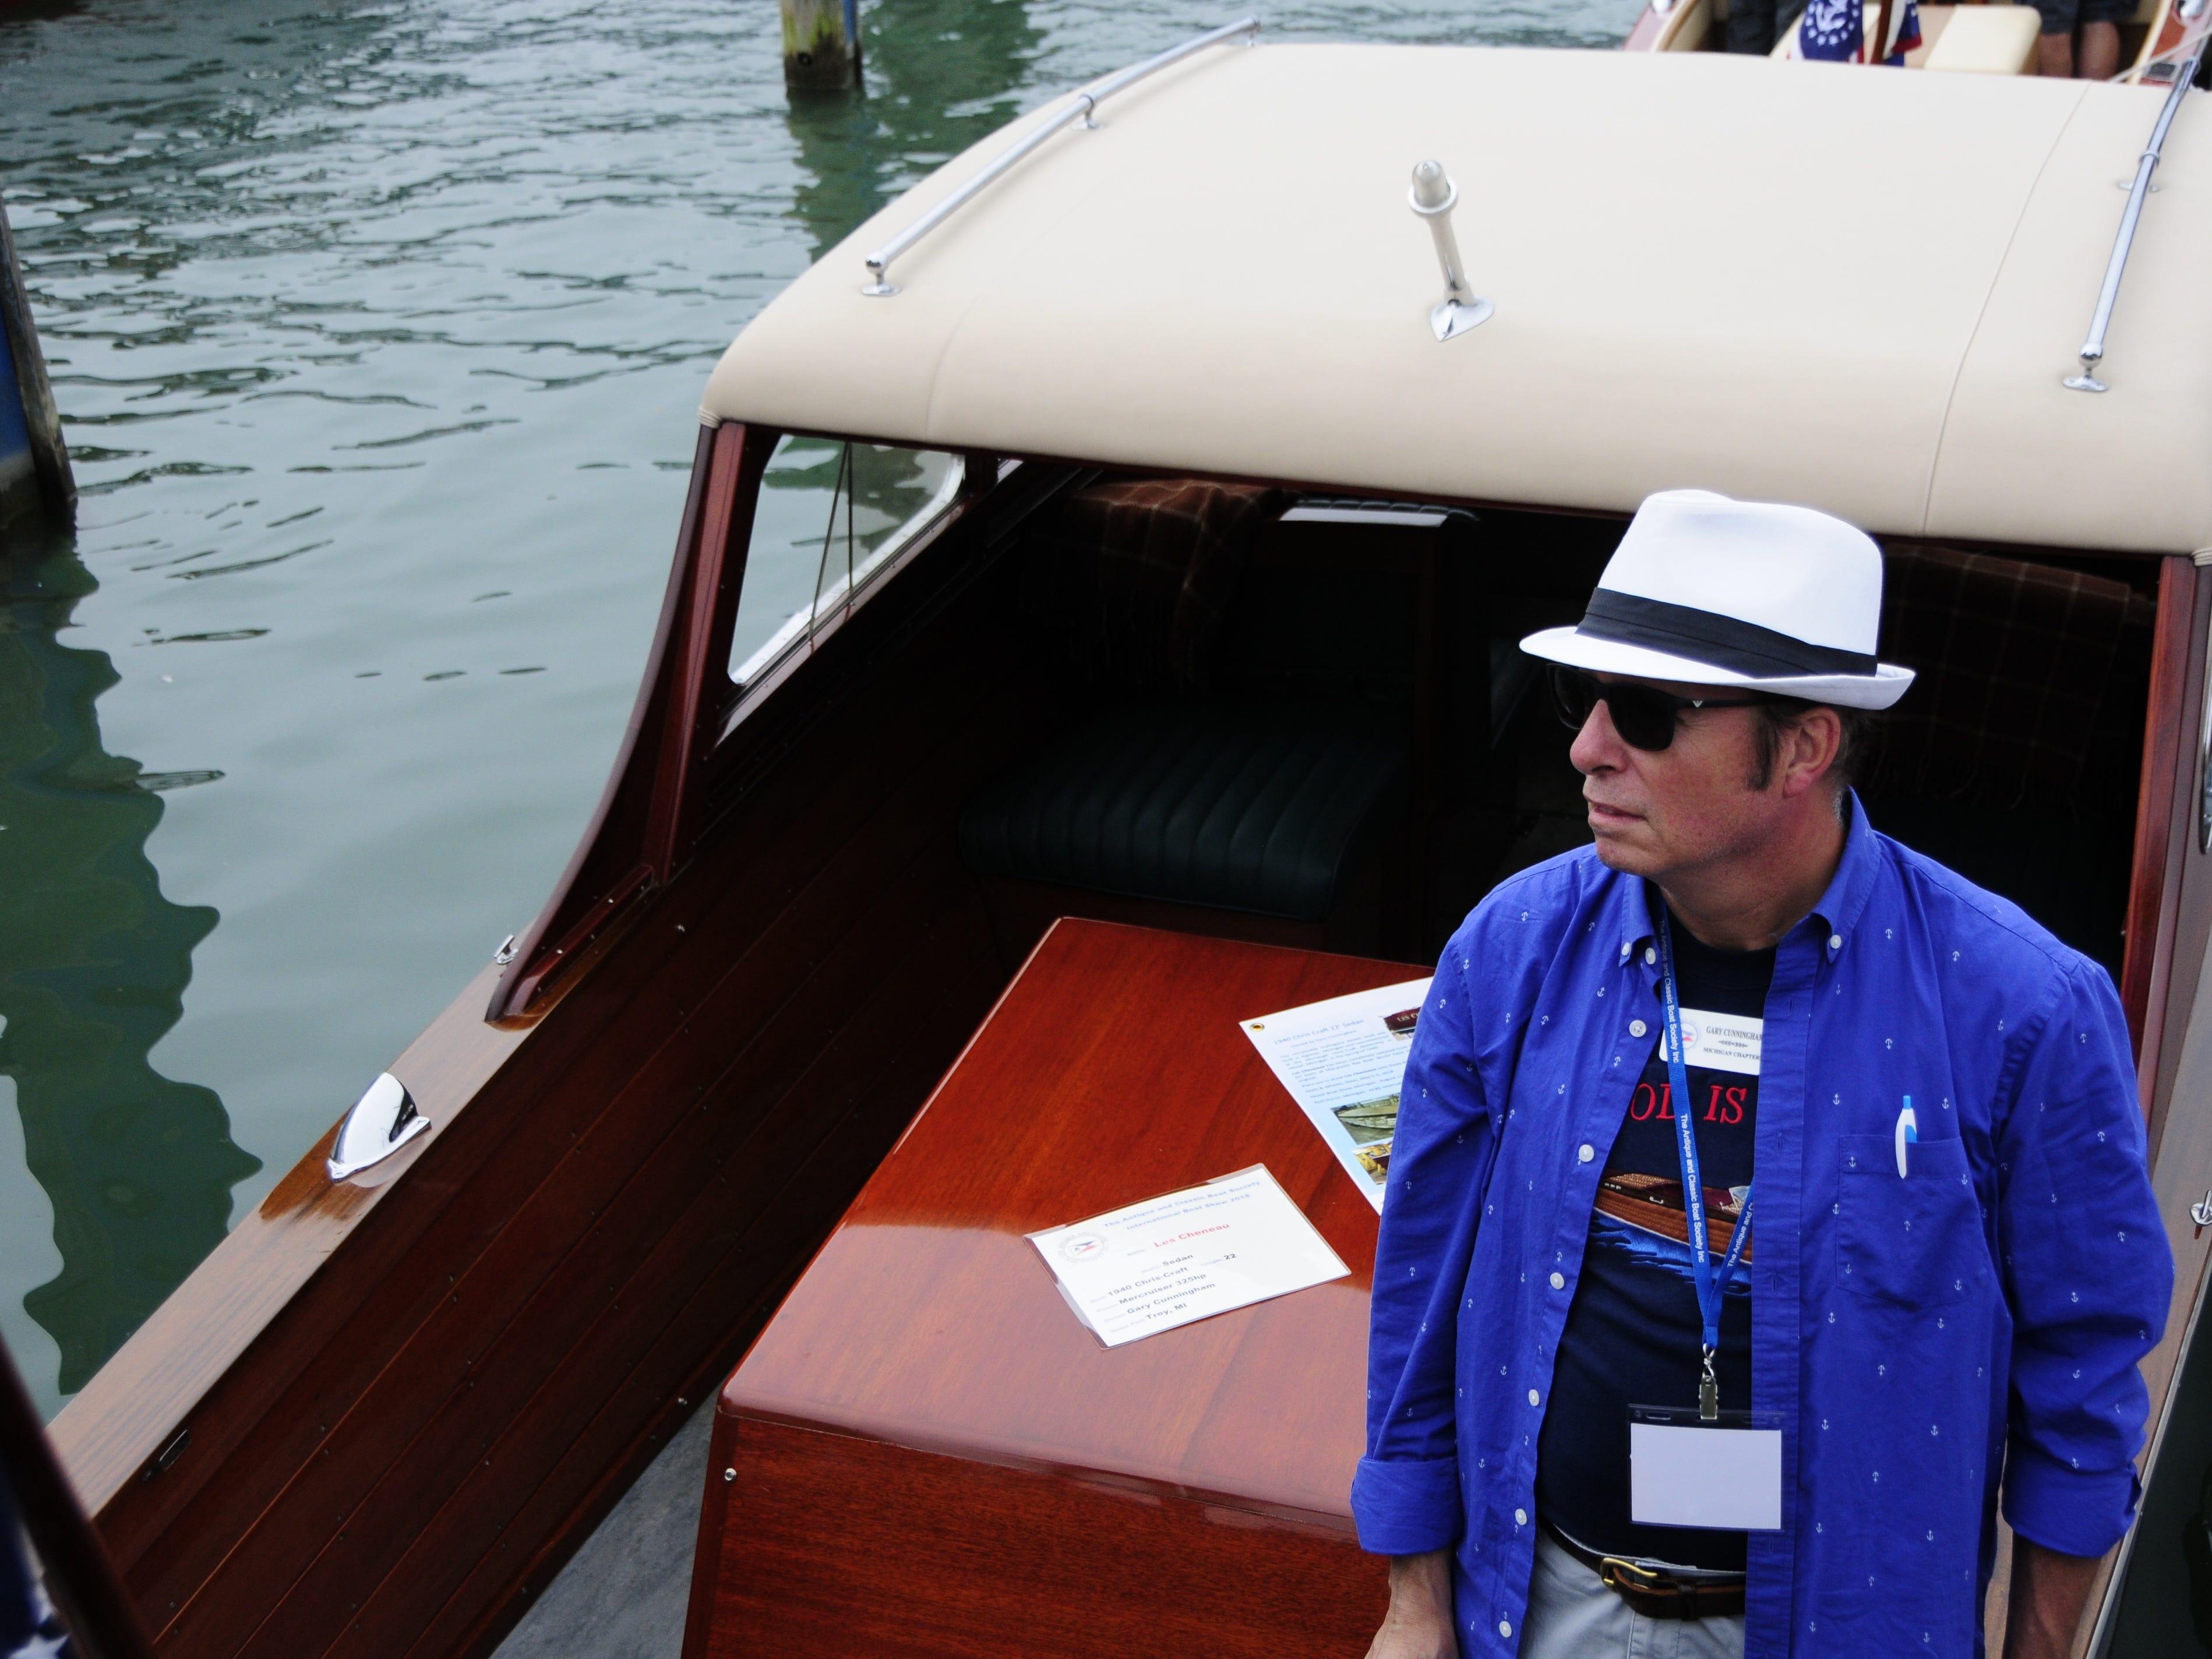 Gary Cunningham. of Troy, stands aboard a 19450 Chris-Craft sedan during the Antique and Classic Boat Society International Boat Show on Saturday, Sept. 15, 2018.